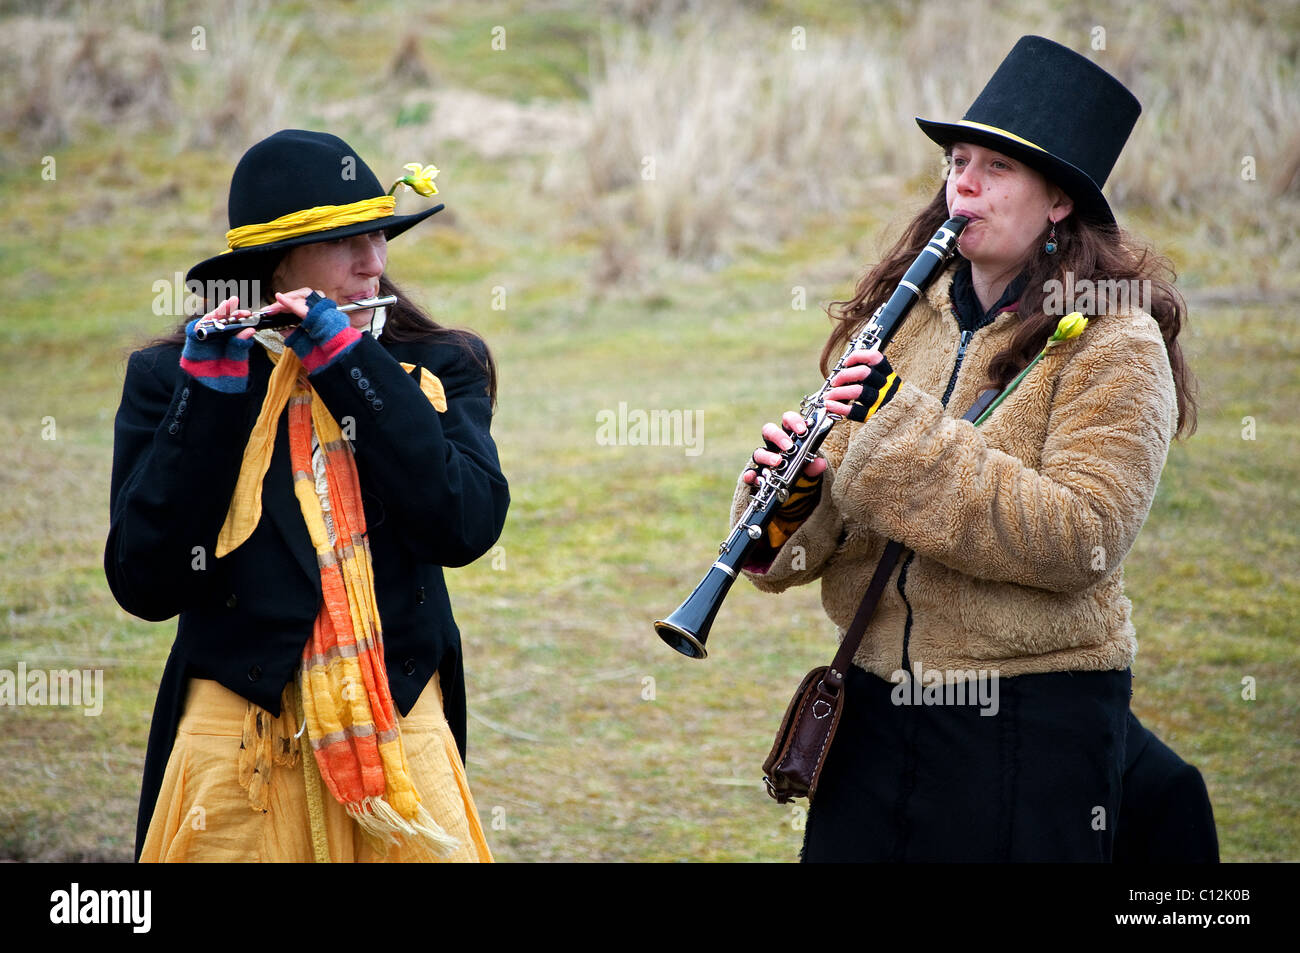 A local folk band playing during the annual St.Pirans day celebrations at Perranporth in Cornwall, UK - Stock Image